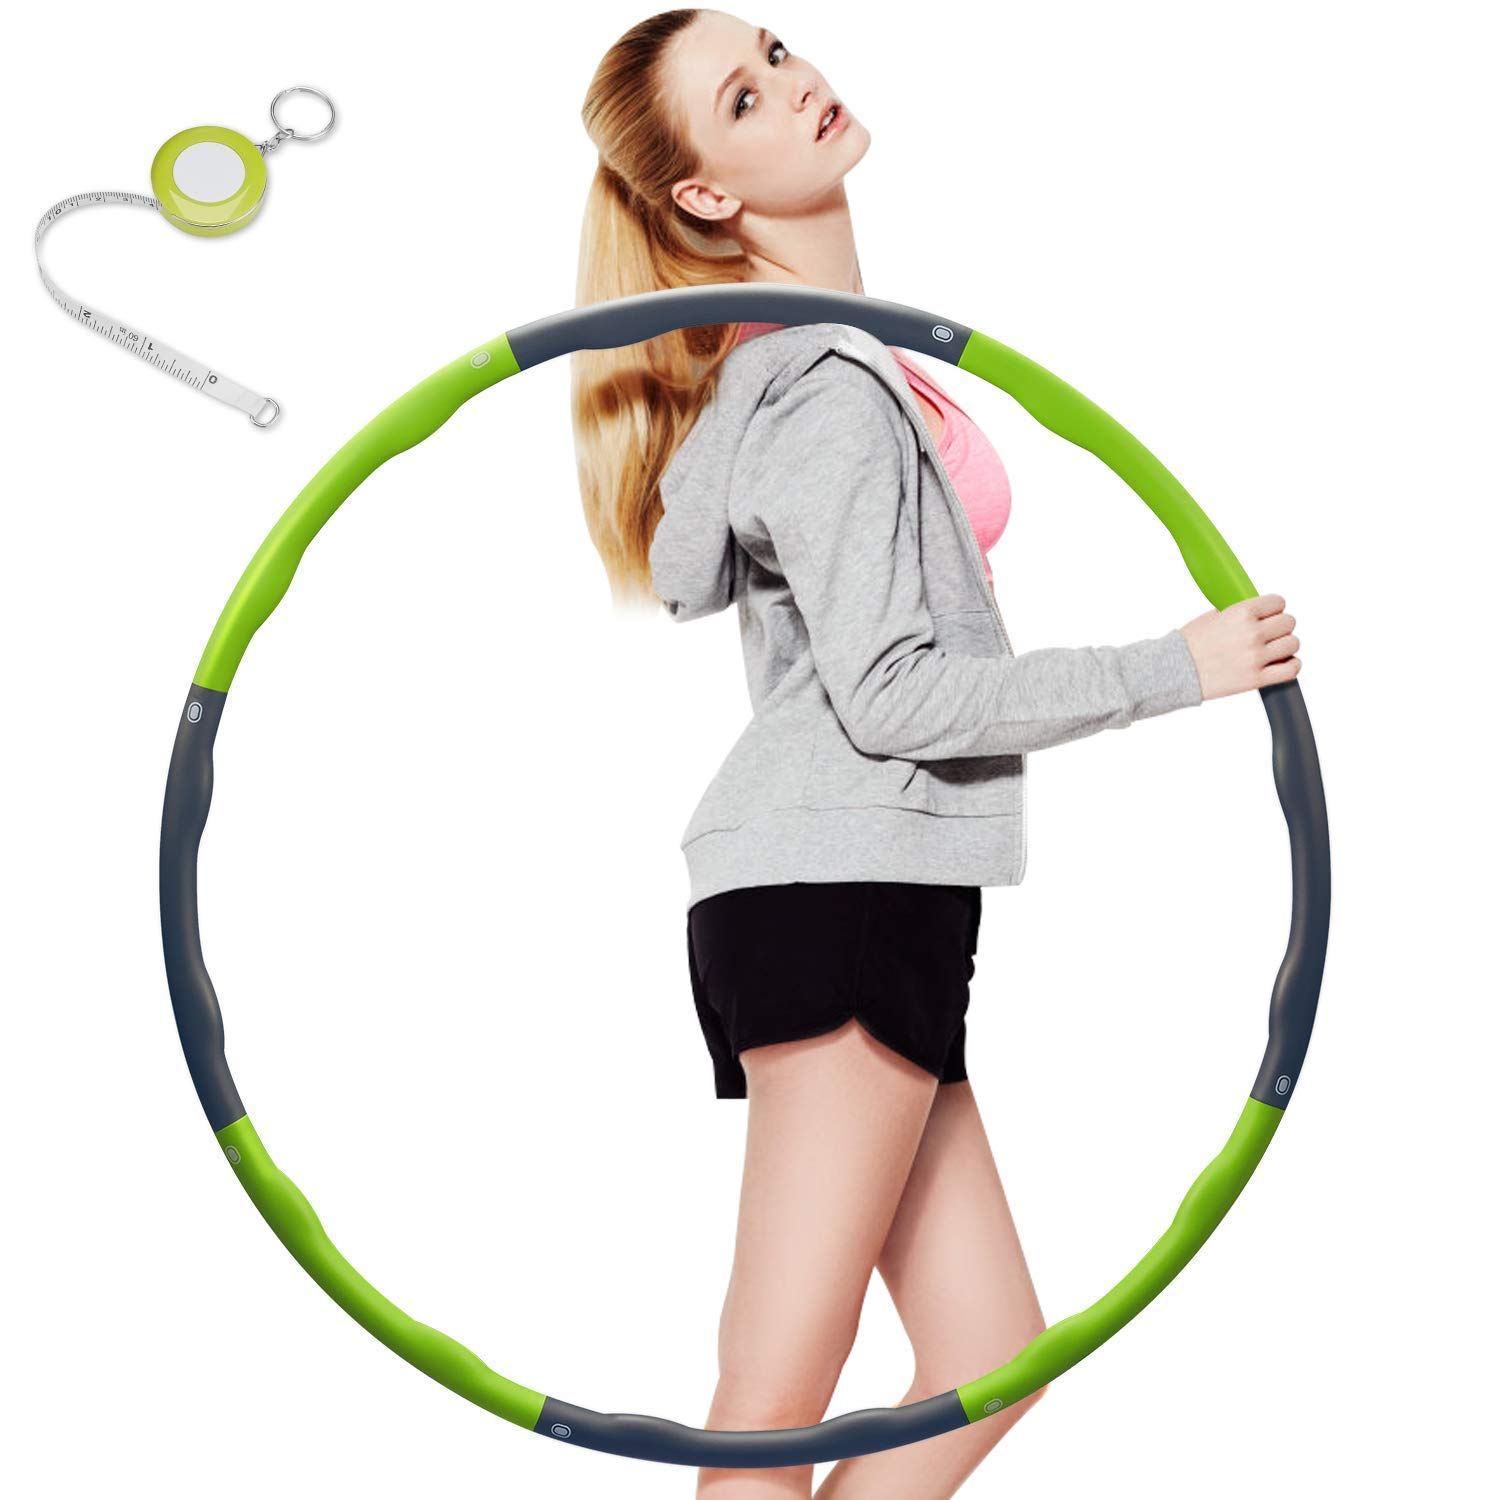 Kuyou Hula Hoop, Folding Fitness Wave Weighted 0.9 kg (2lbs) Adujustable Width 48-88cm (26.8-34.6in) for Youth Adults Ladies GYM Exercise (4 knots green + grey) with Waist Ruler